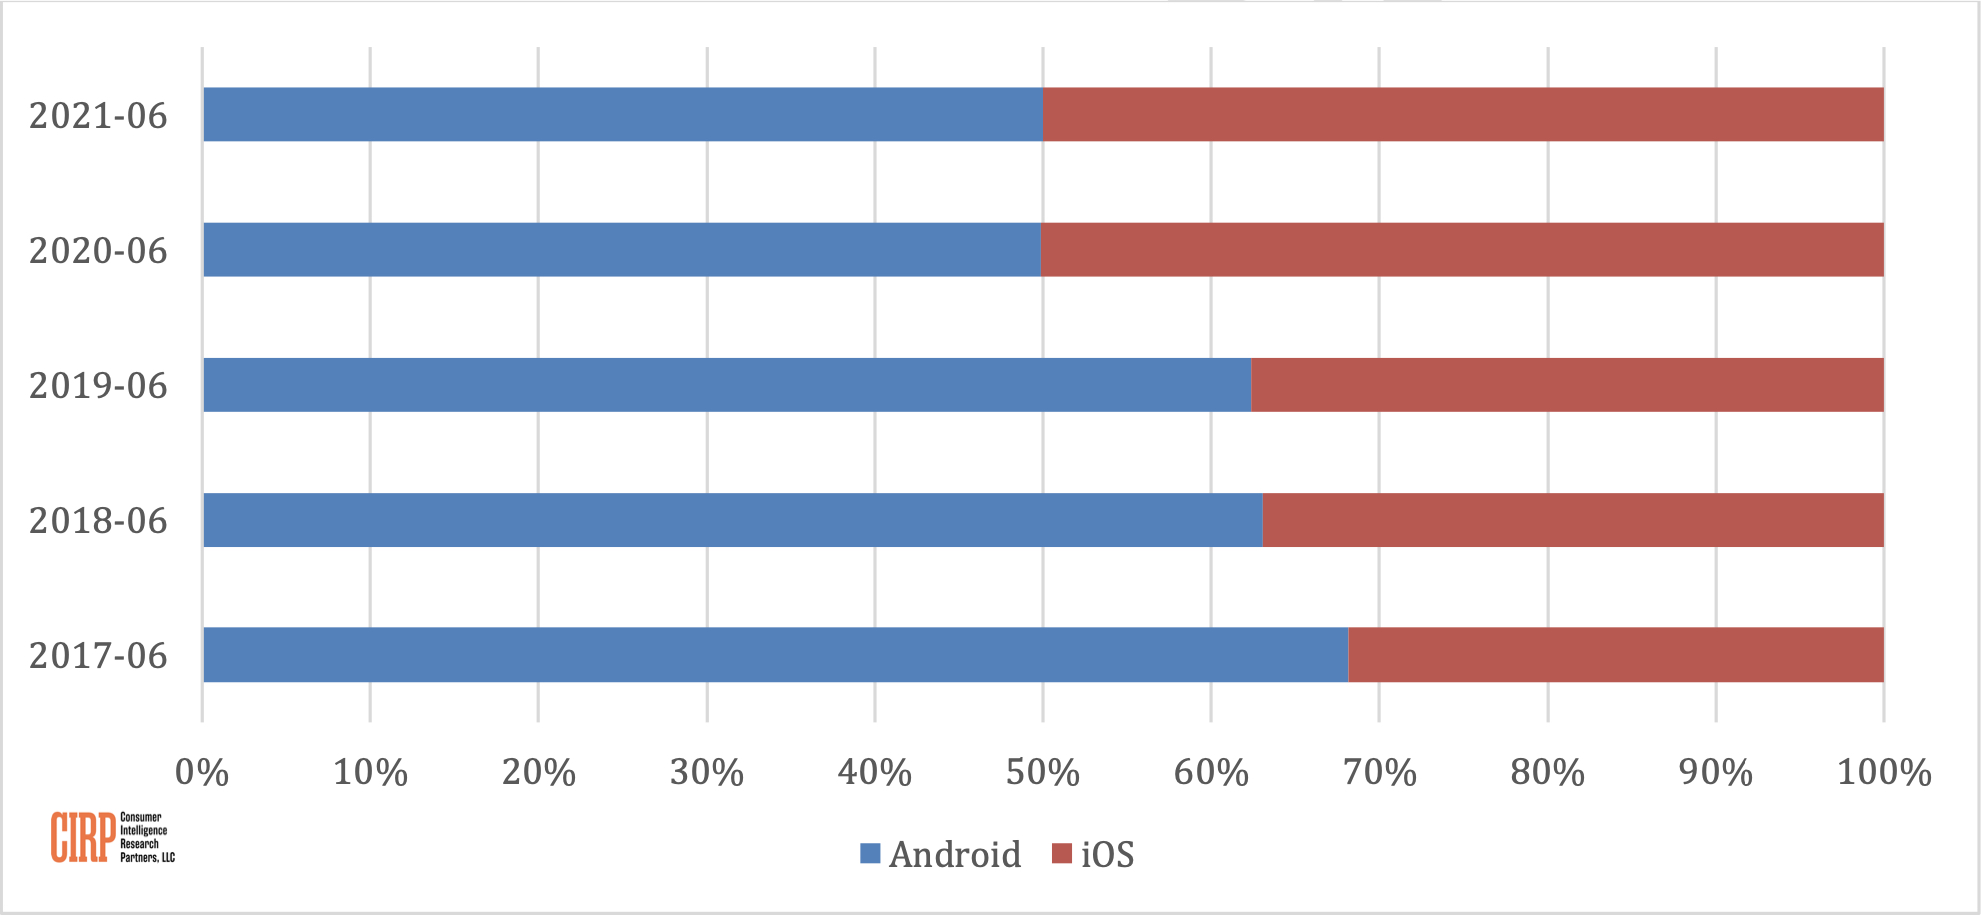 iOS and Android Activations Now Split Evenly in the U.S., Research Shows